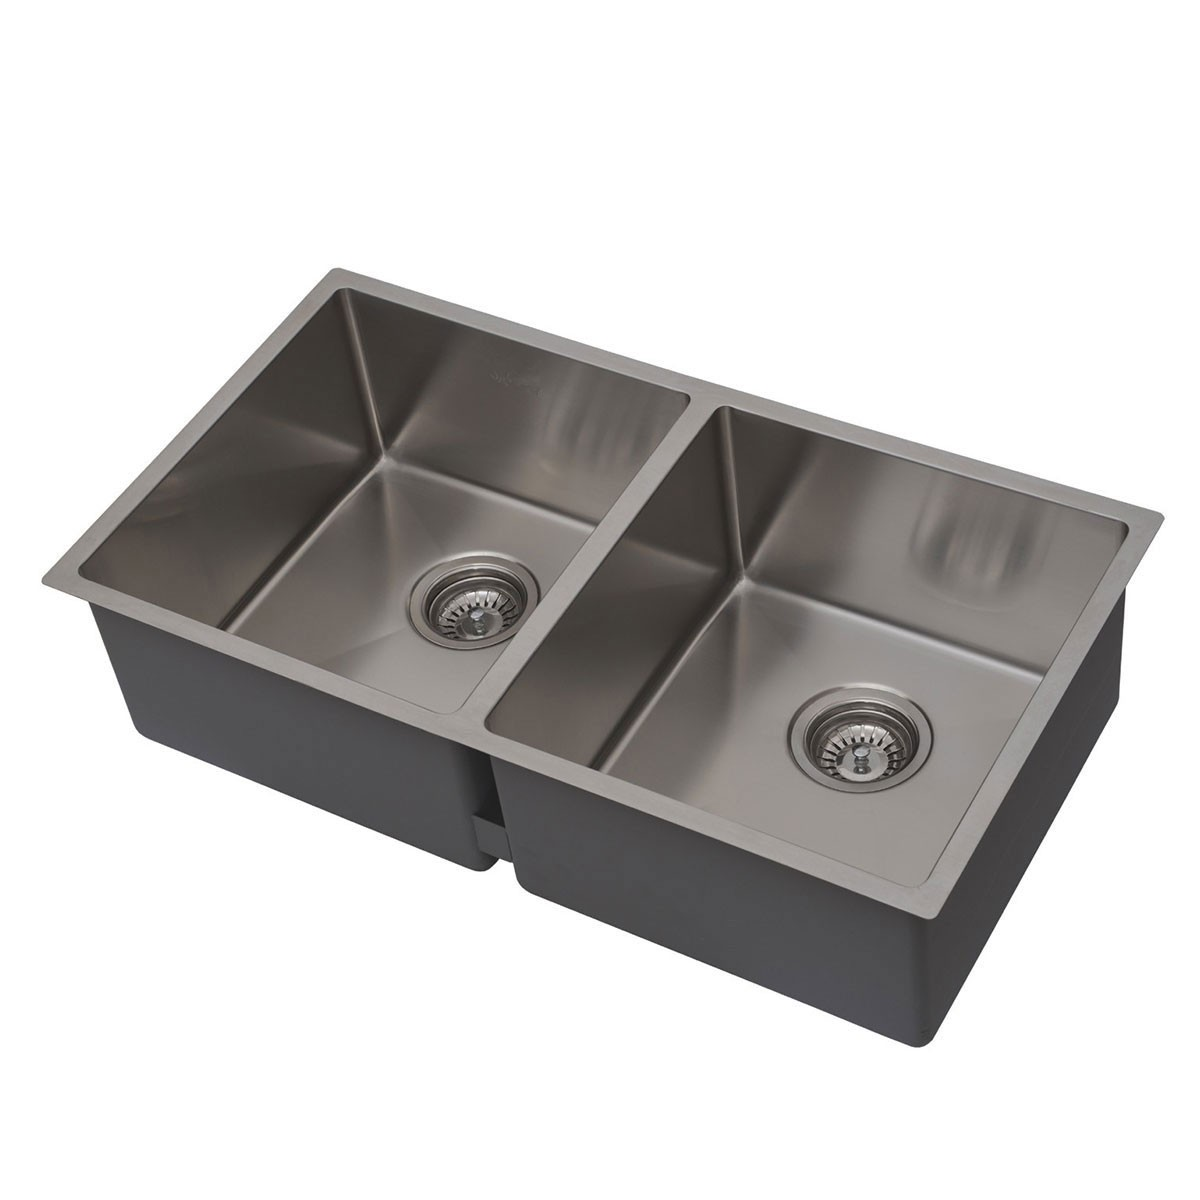 32 x 19 In. Stainless Steel Kitchen Sink, Double Bowl (DSR3219-R10)